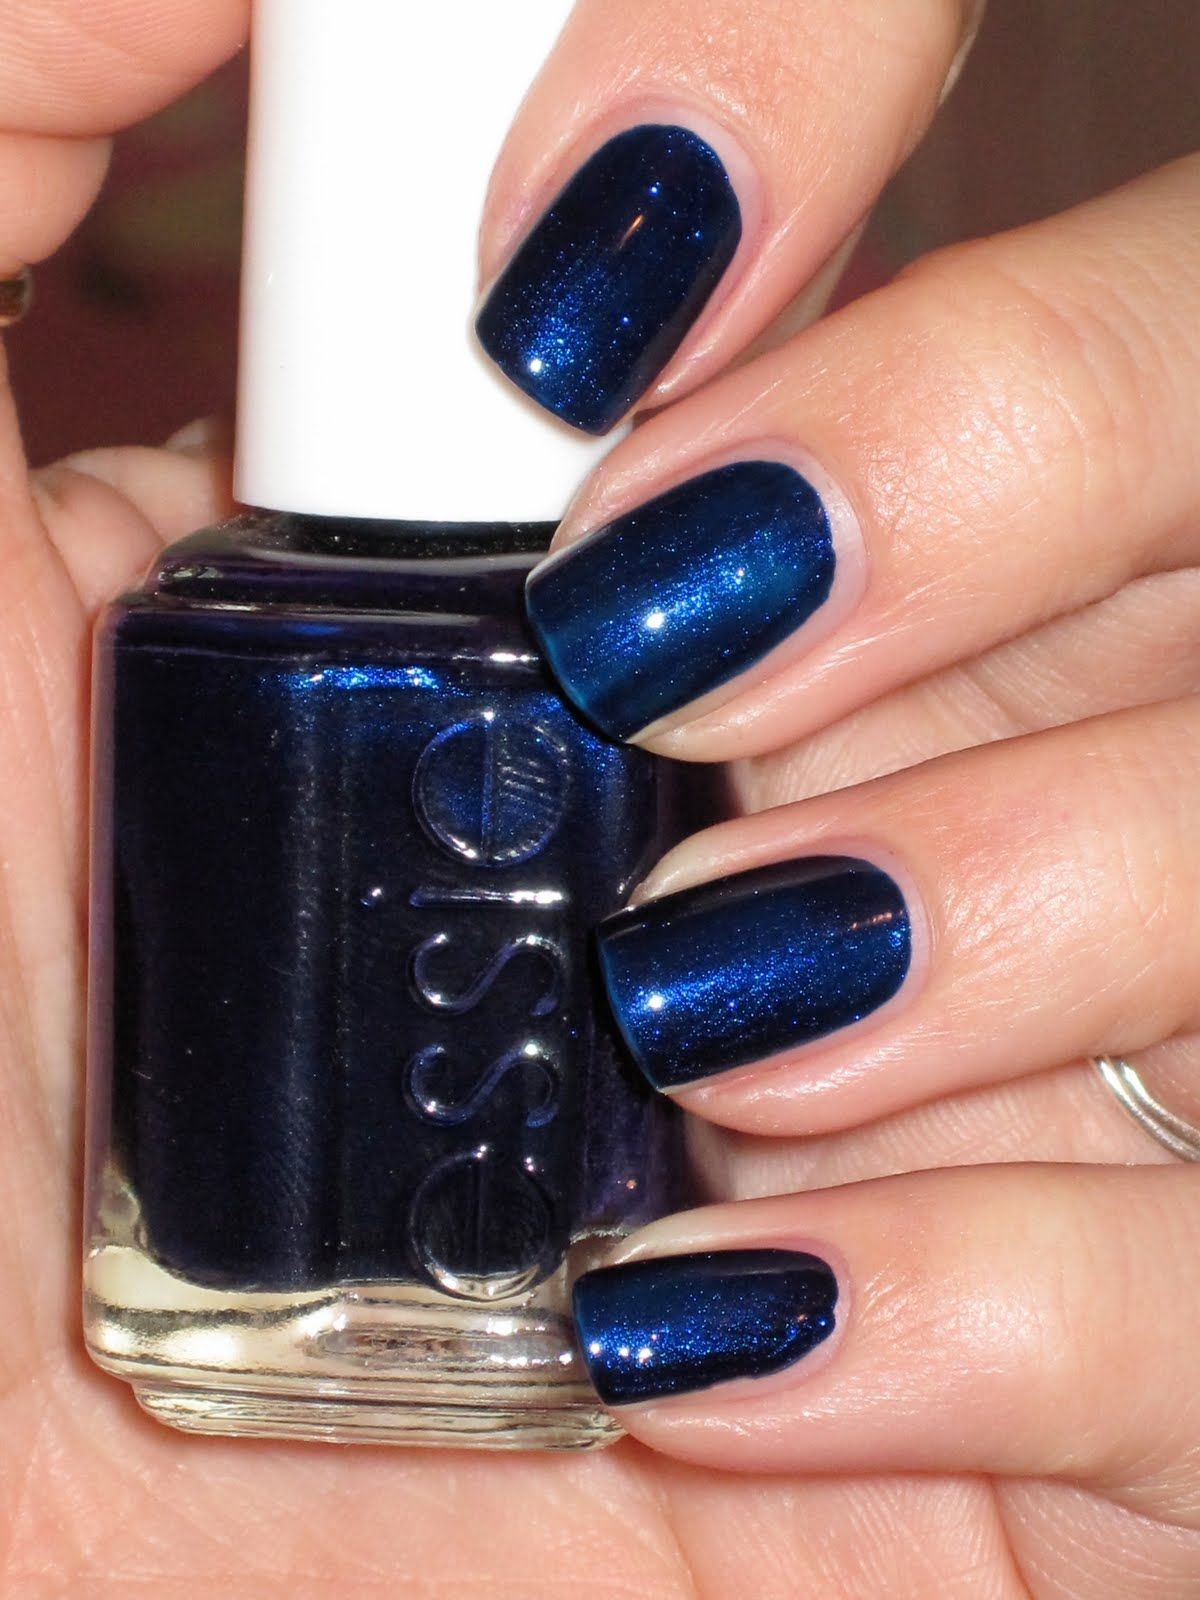 Essie Midnight Cami : My current manicure color | Polished ...